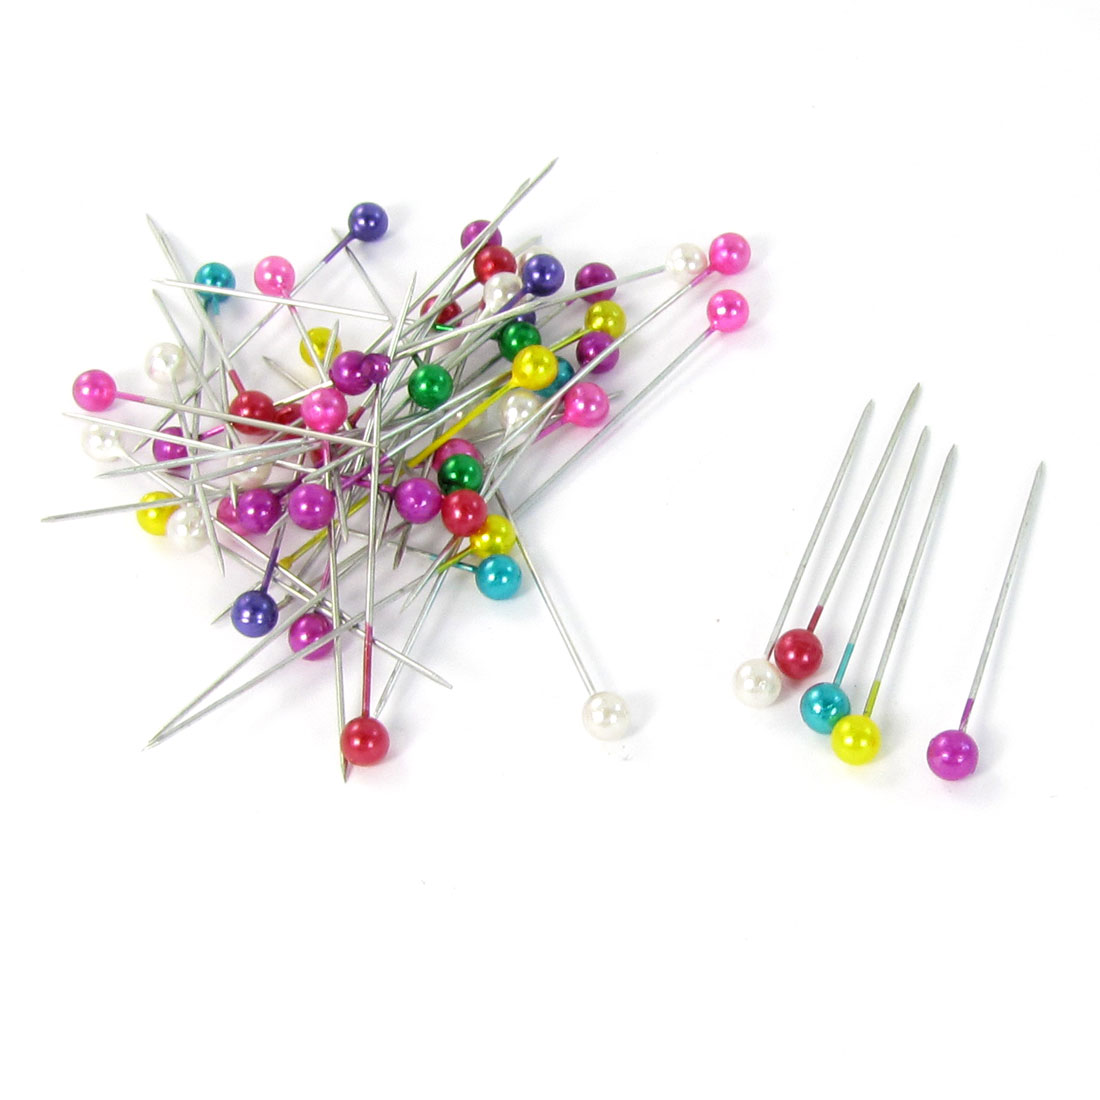 55 Pcs Assorted Color Round Imitation Pearl Sewing Corsage Needle Ball Head Pins